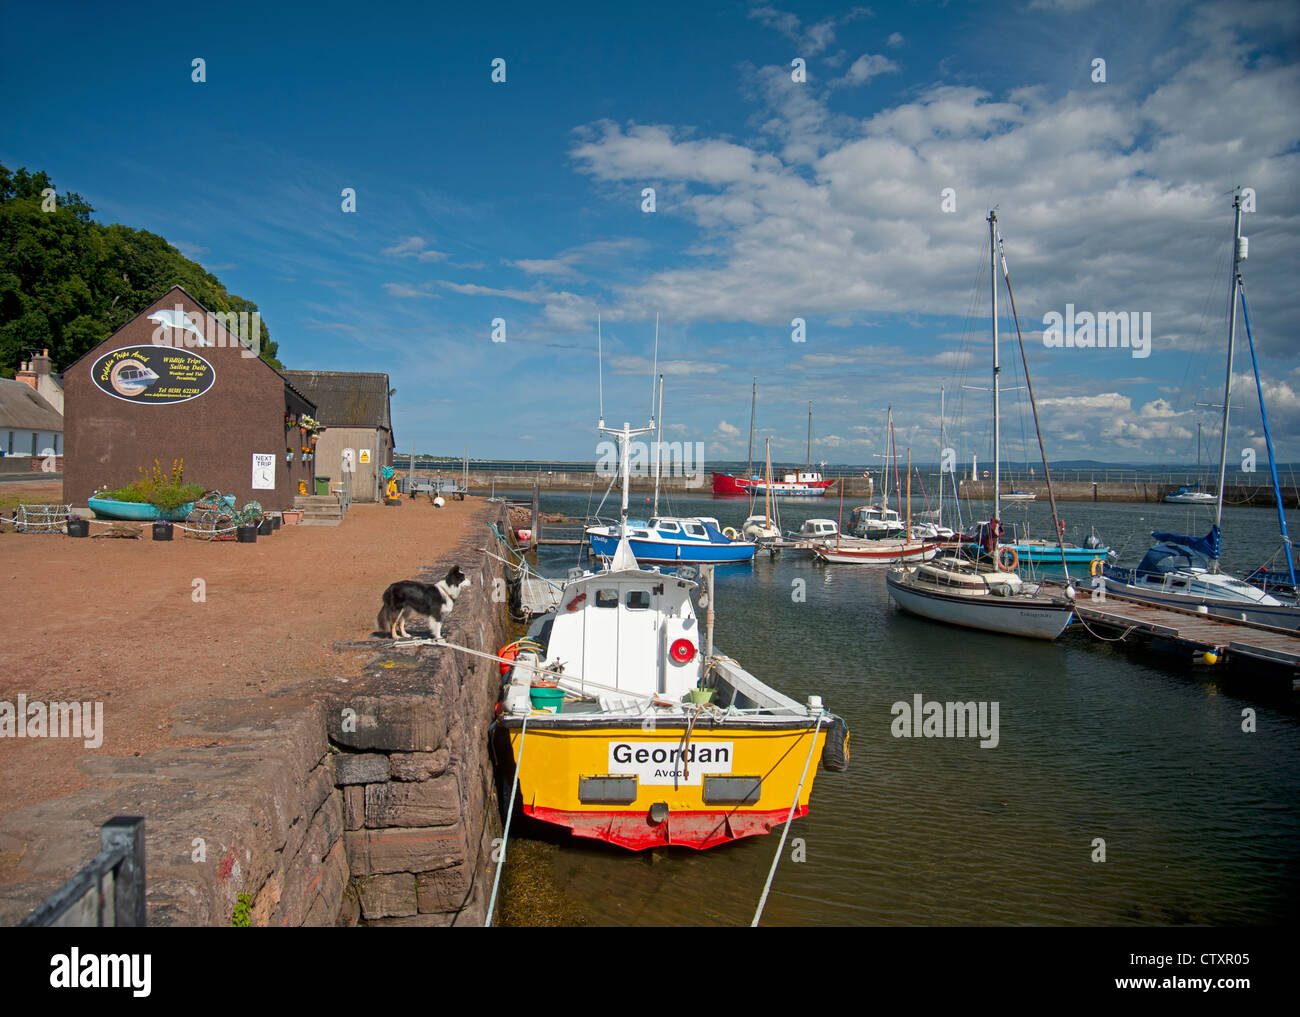 Avoch harbour on the Moray Firth offers dolphin watching boat trips.  SCO 8273 - Stock Image